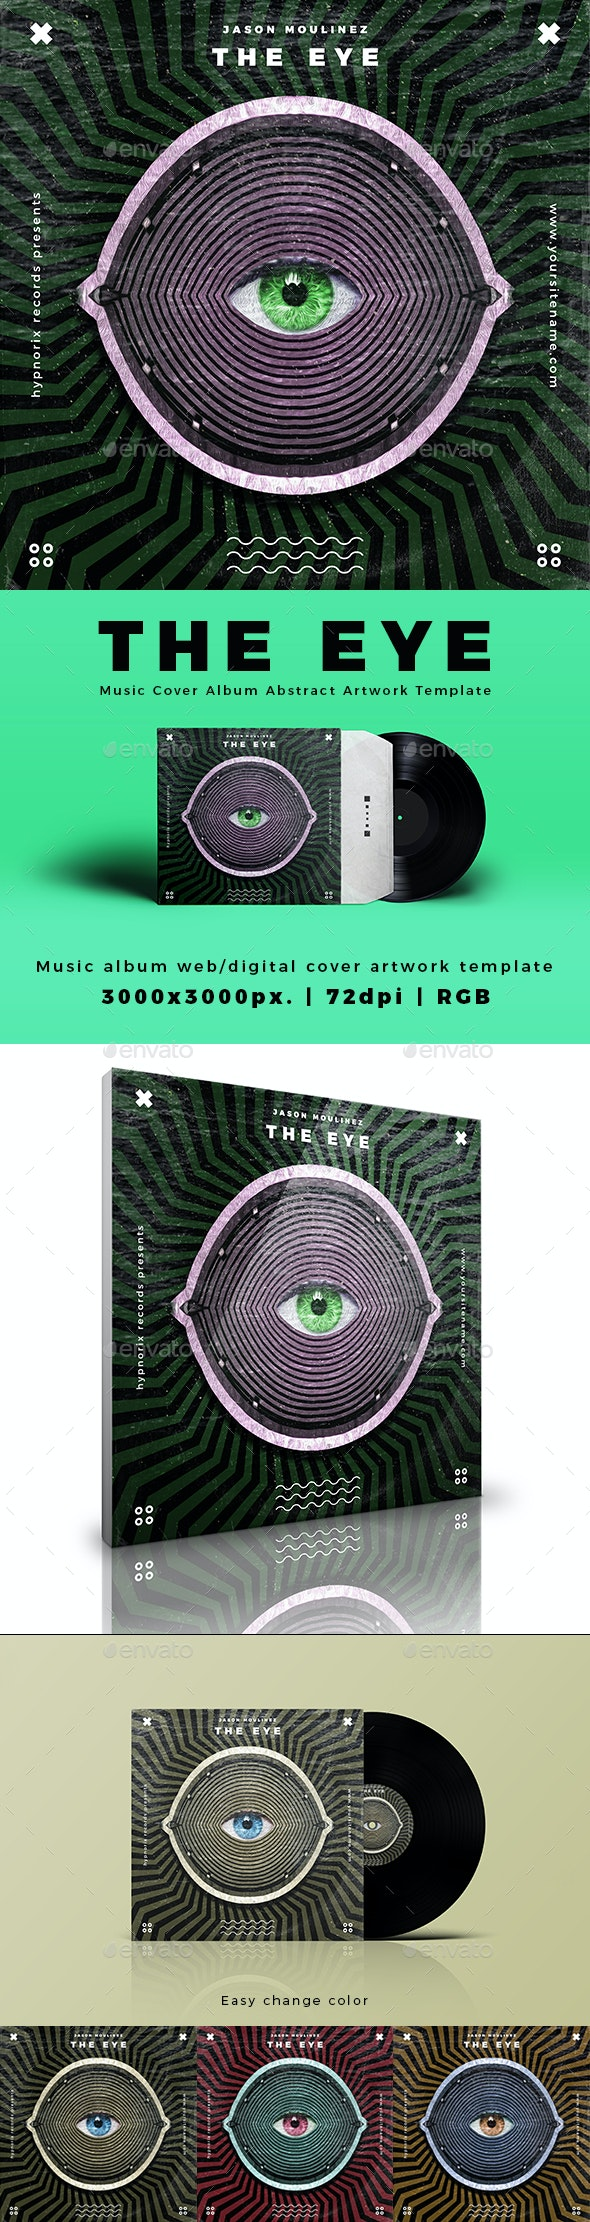 The Eye - Music Cover Album or Song Cover Abstract Artwork Template - Miscellaneous Social Media